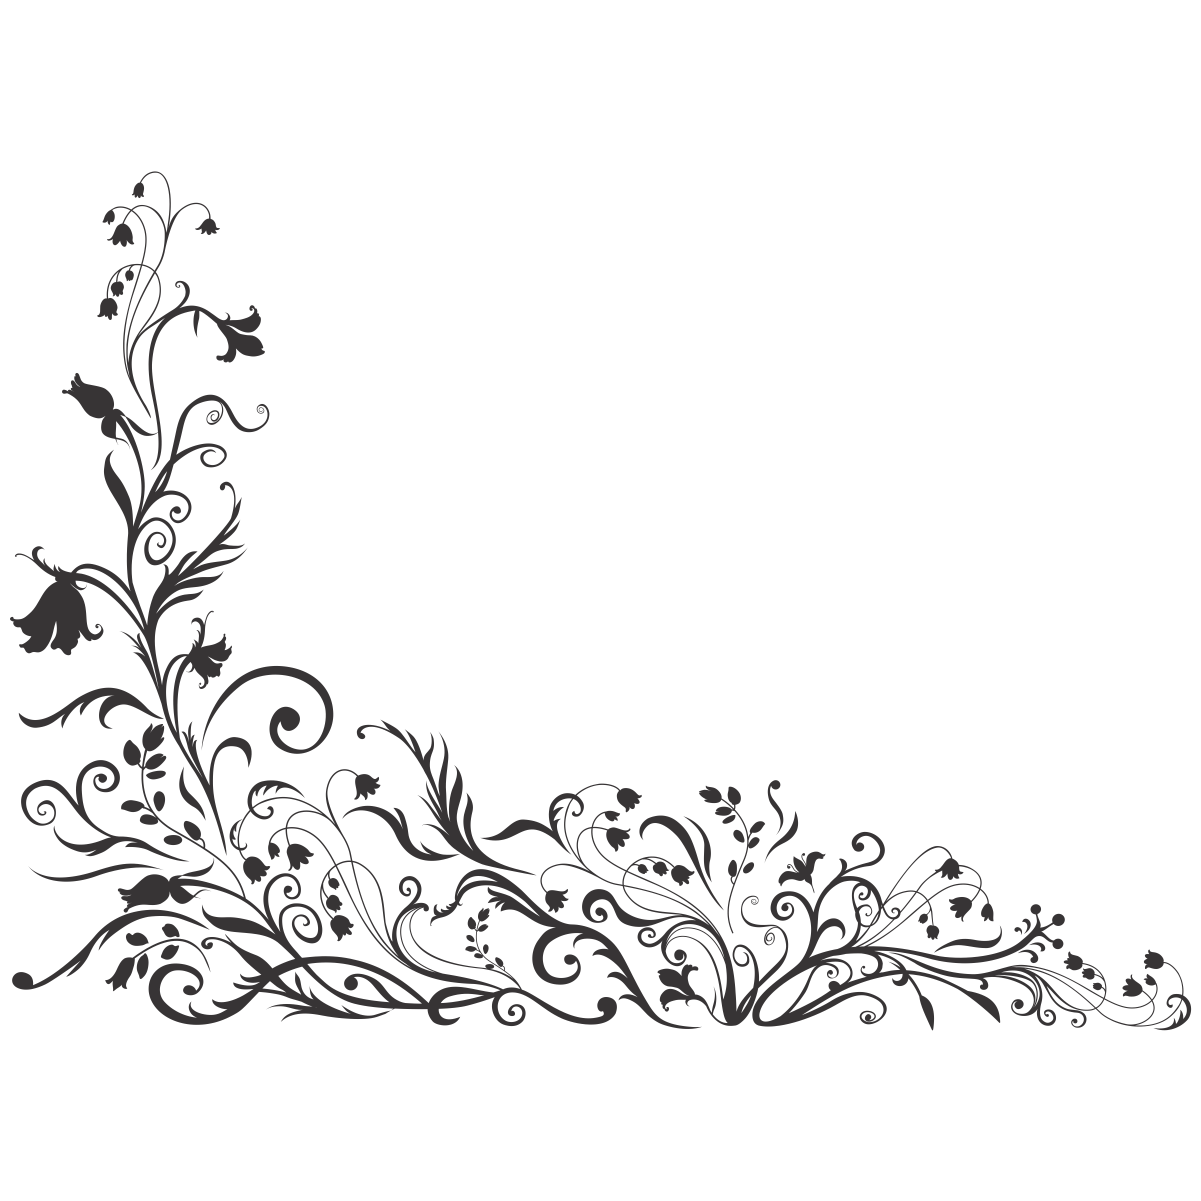 Crown moulding clipart black and white library molduras arabescos - Pesquisa Google | Black and white | Pinterest ... library